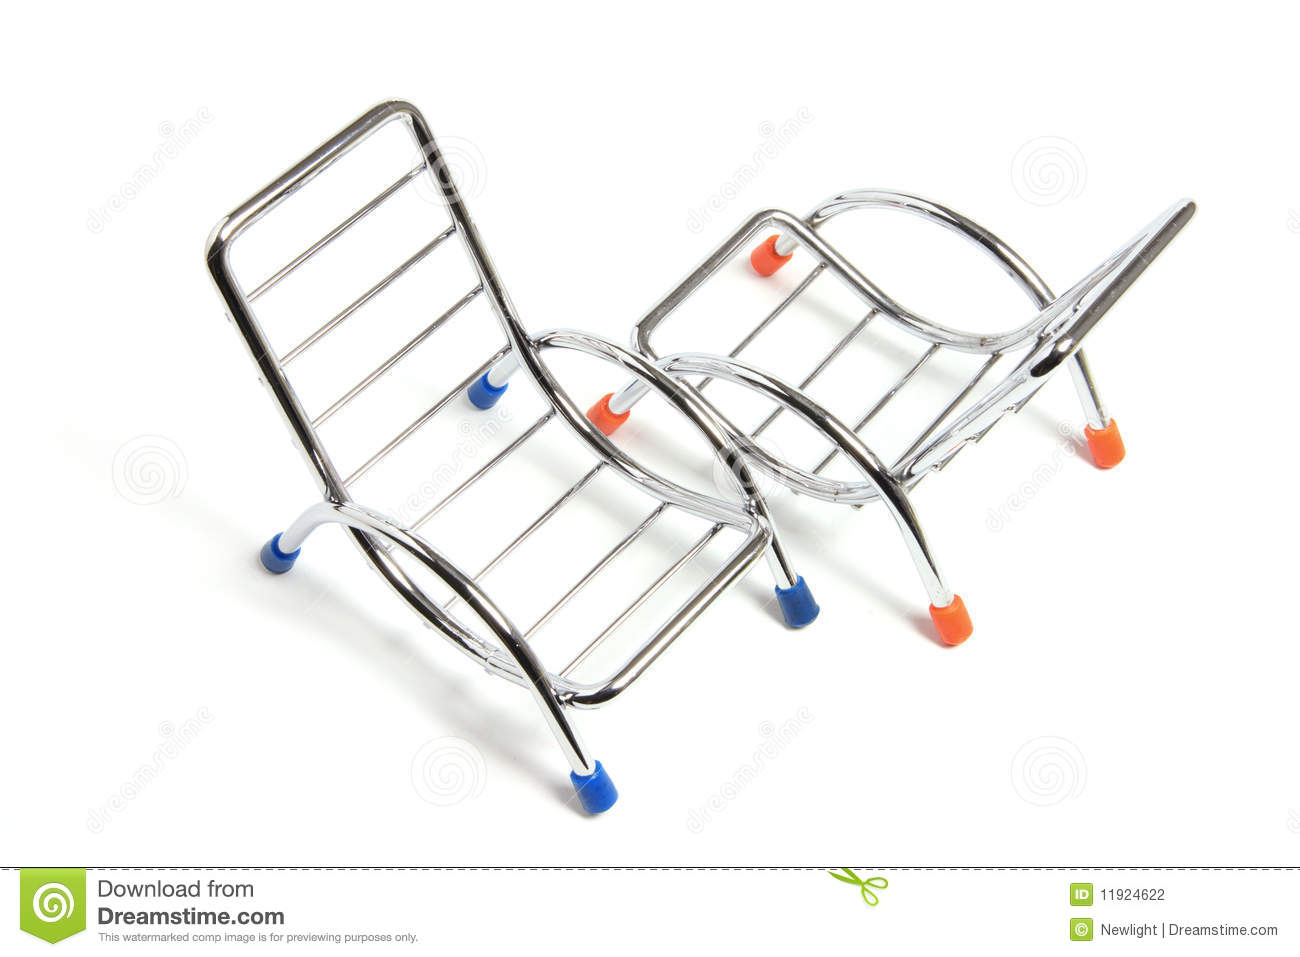 Miniature Reclining Chairs Stock Photography